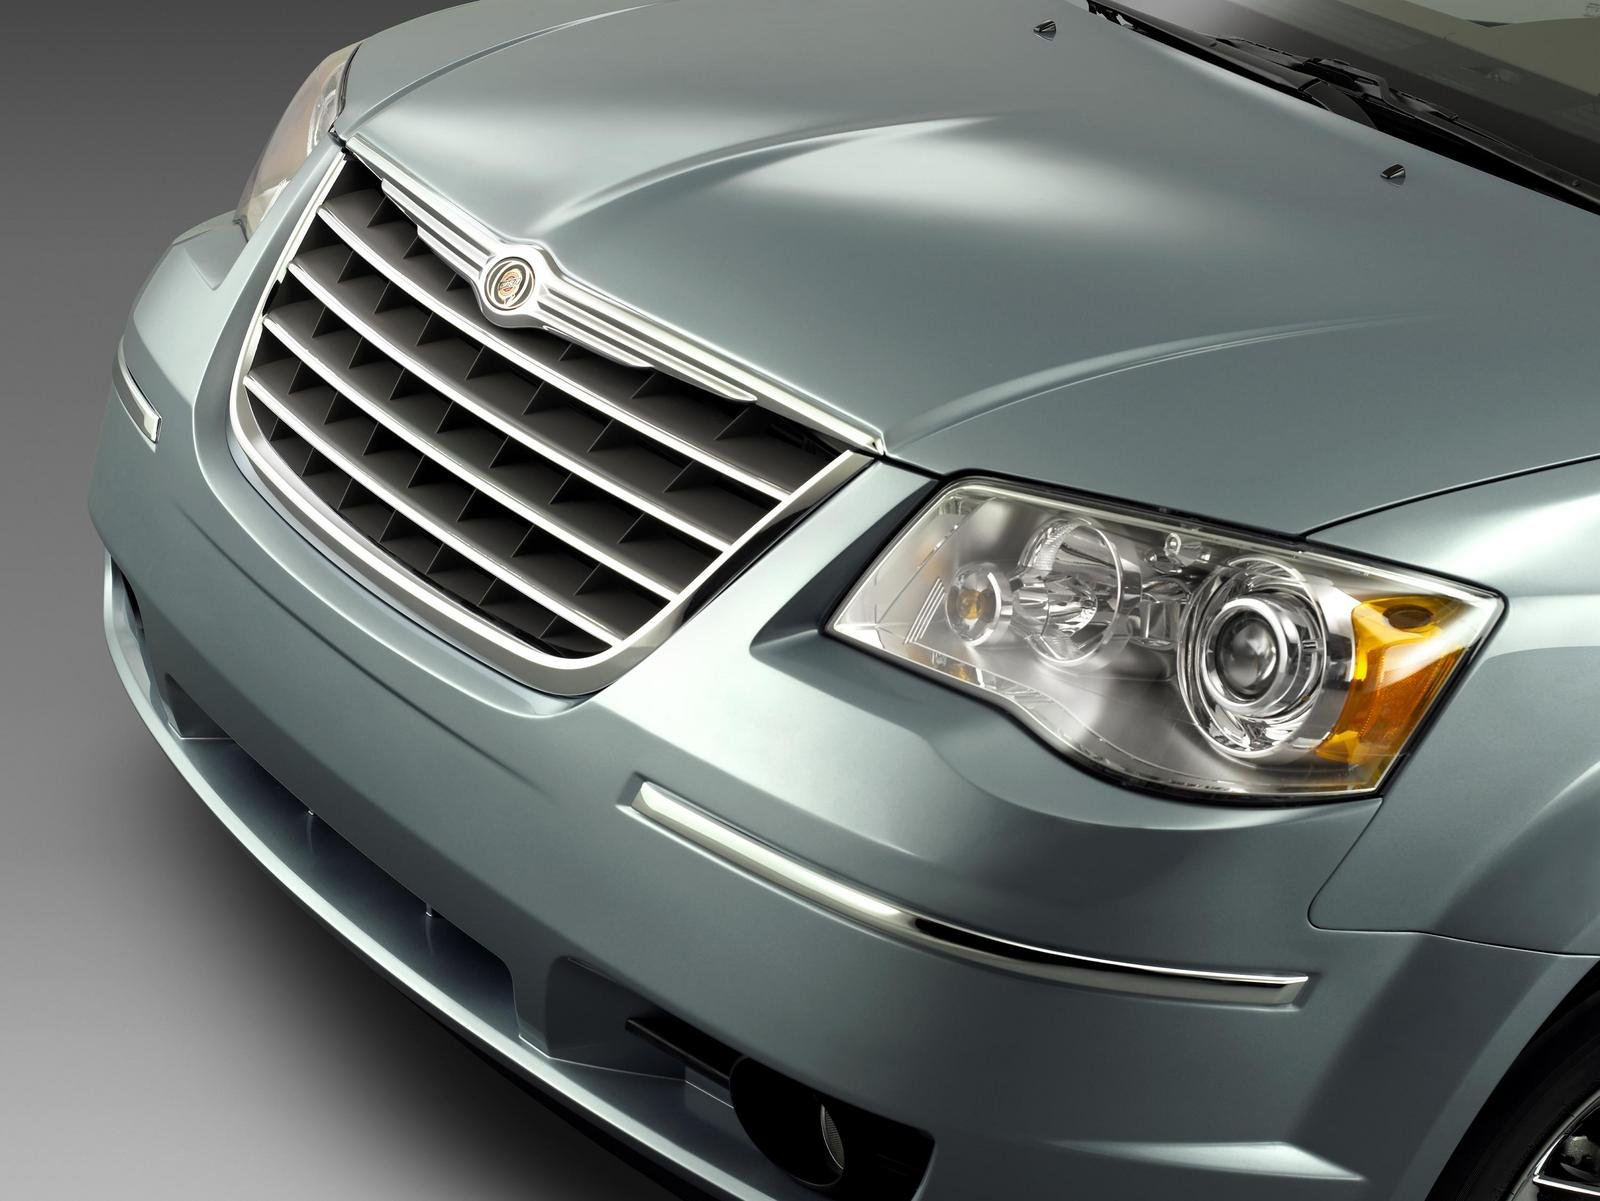 2008 chrysler town country review top speed. Black Bedroom Furniture Sets. Home Design Ideas